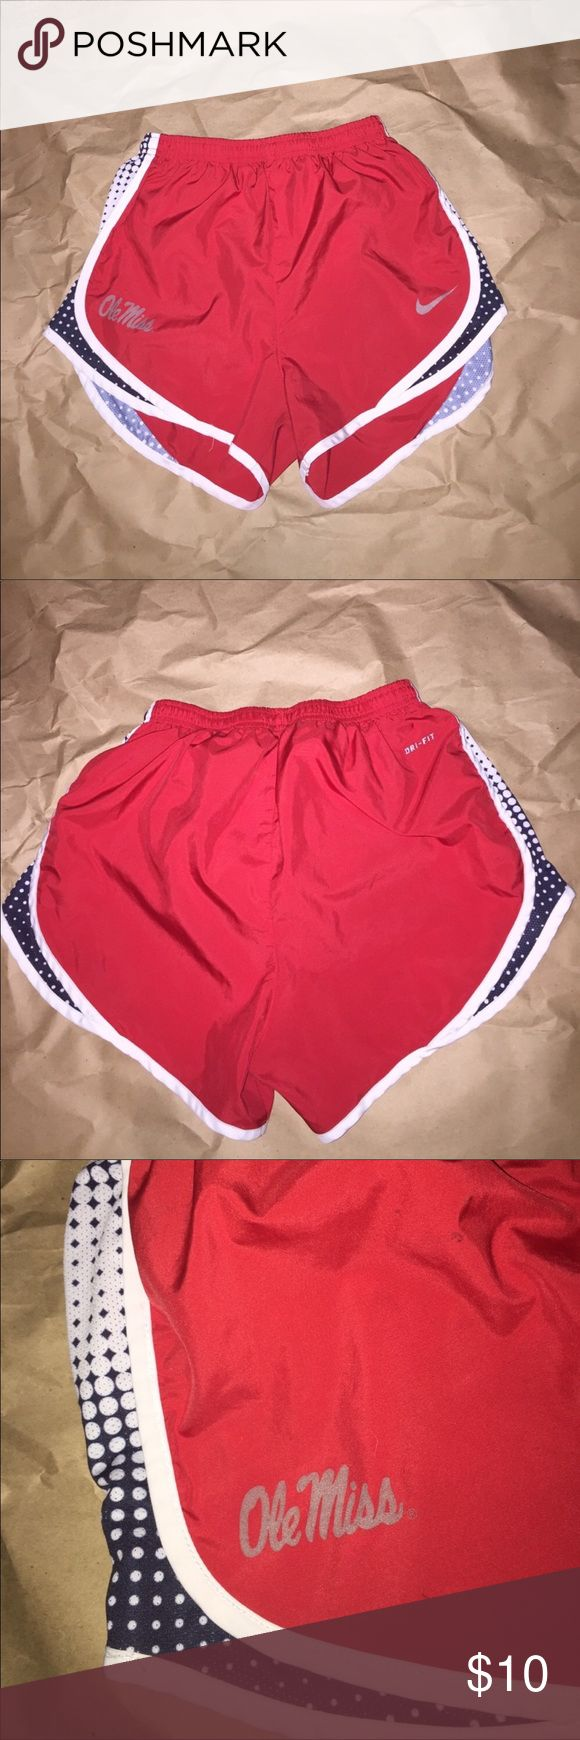 Nike Ole Miss Running Shorts lined size Small Women's small Red white and navy blue and gray  Ole Miss Nike dry fit running or workout athletic shorts. Inside is lined with brief. 💕price firm $10💕 gently worn no smells no stains or holes. Perfect Nike dri fit running shorts for Mississippi fan! 💕price firm ships next day Nike Shorts